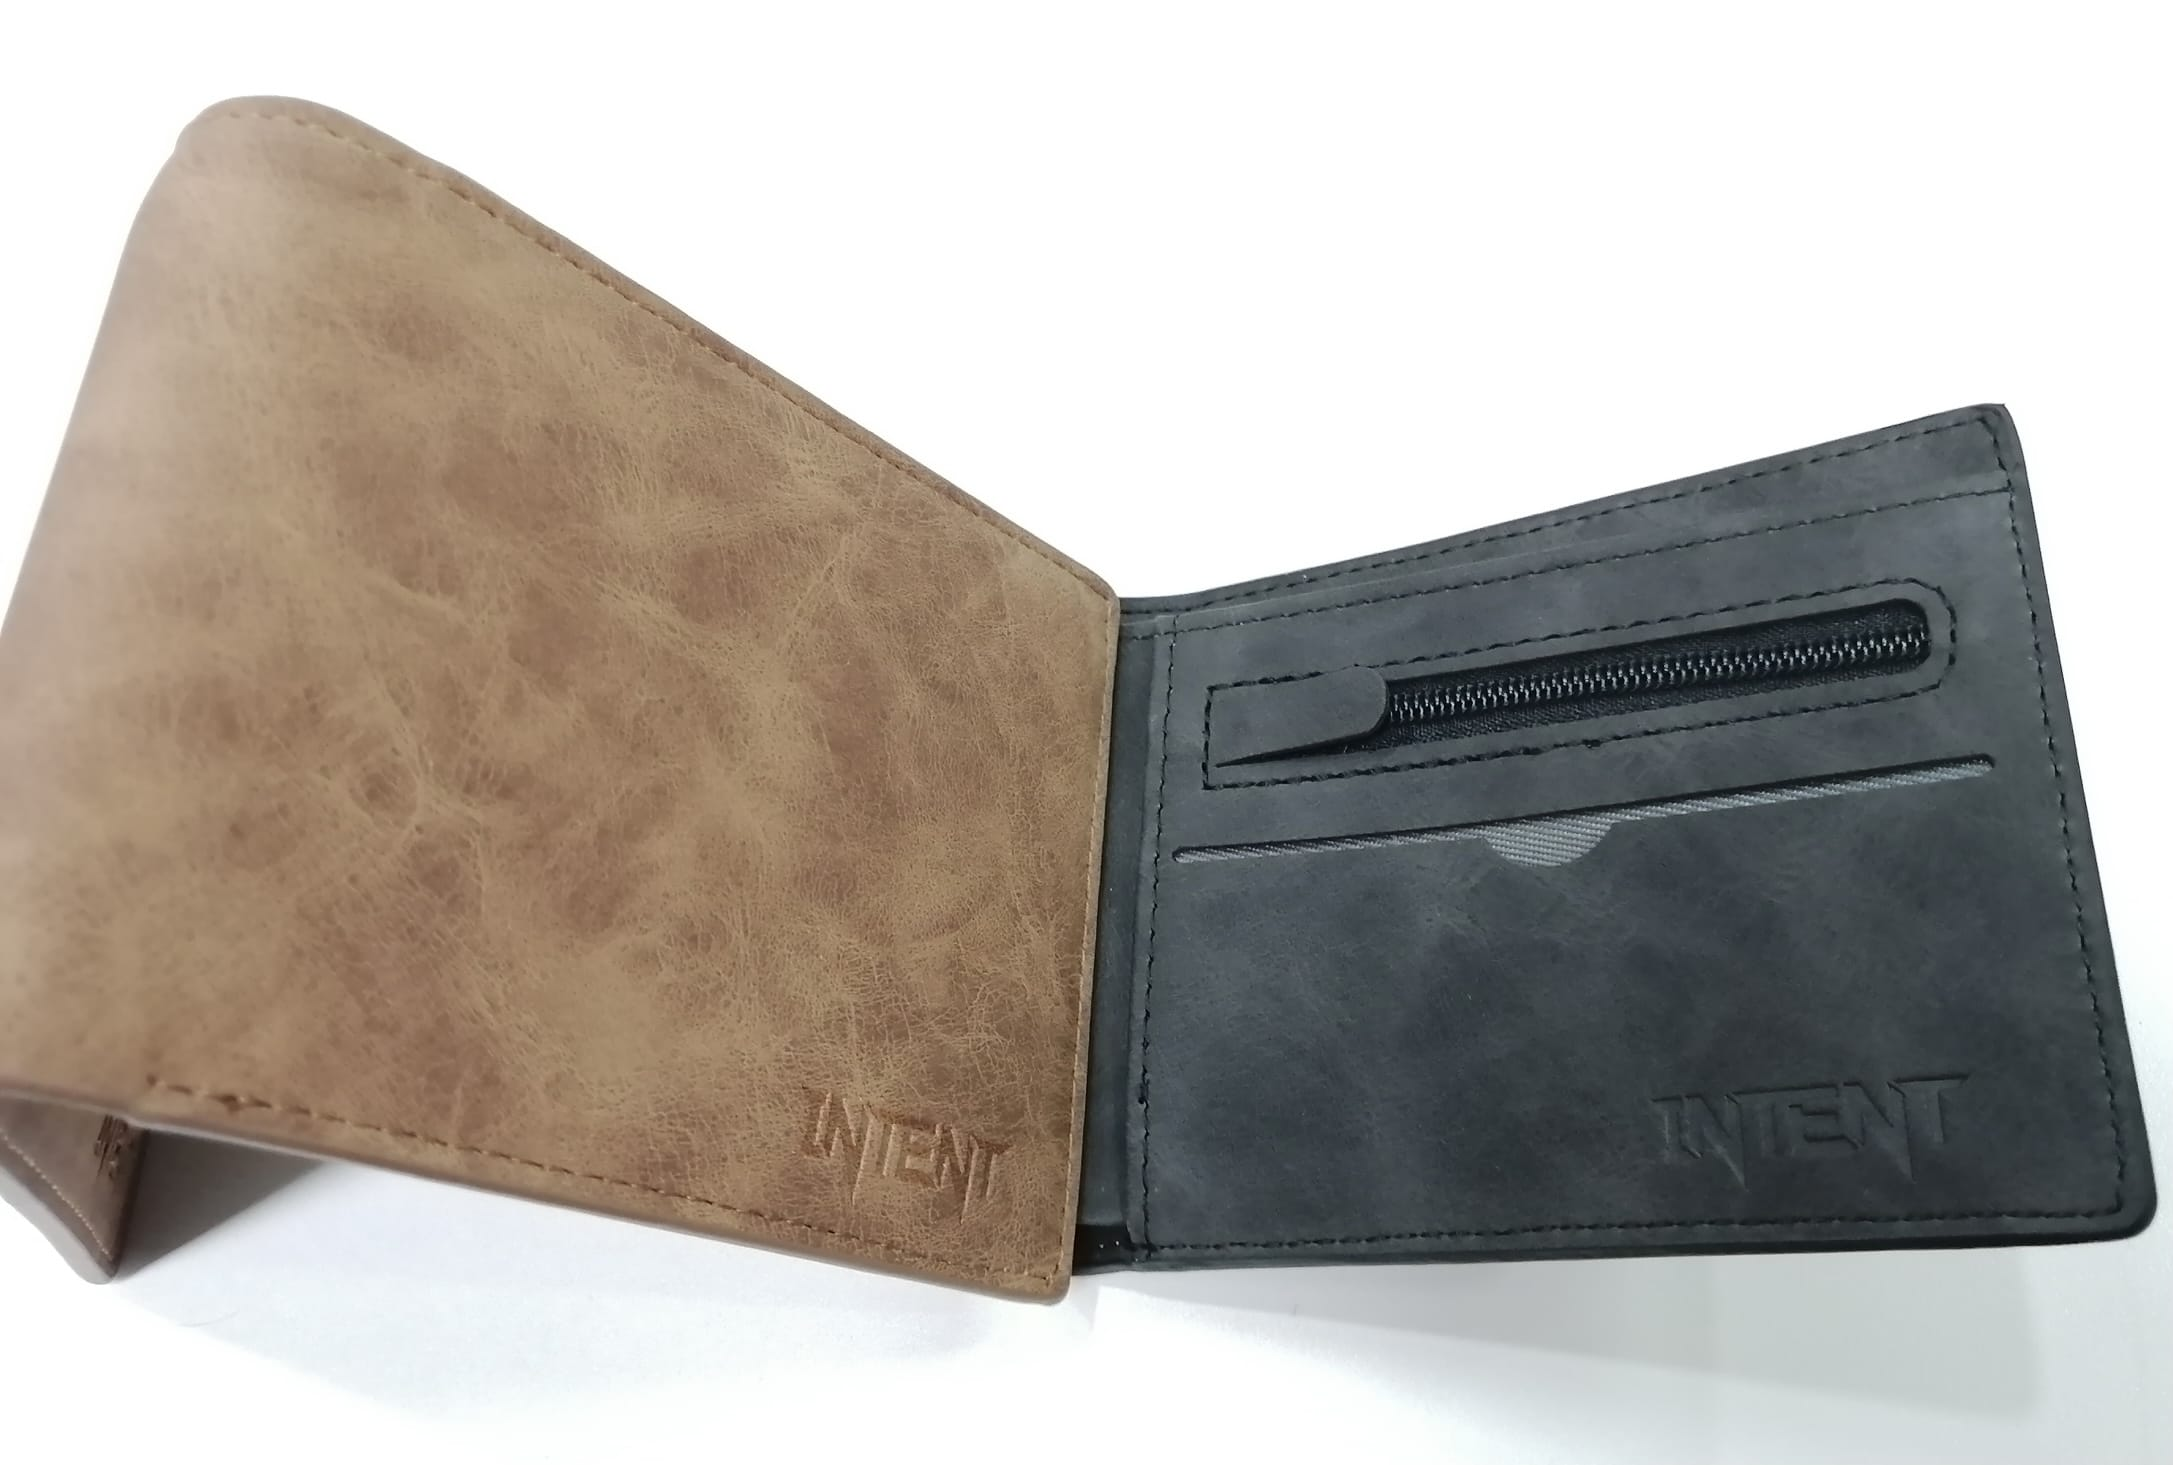 Intent Mx CC Wallet – Brown and black